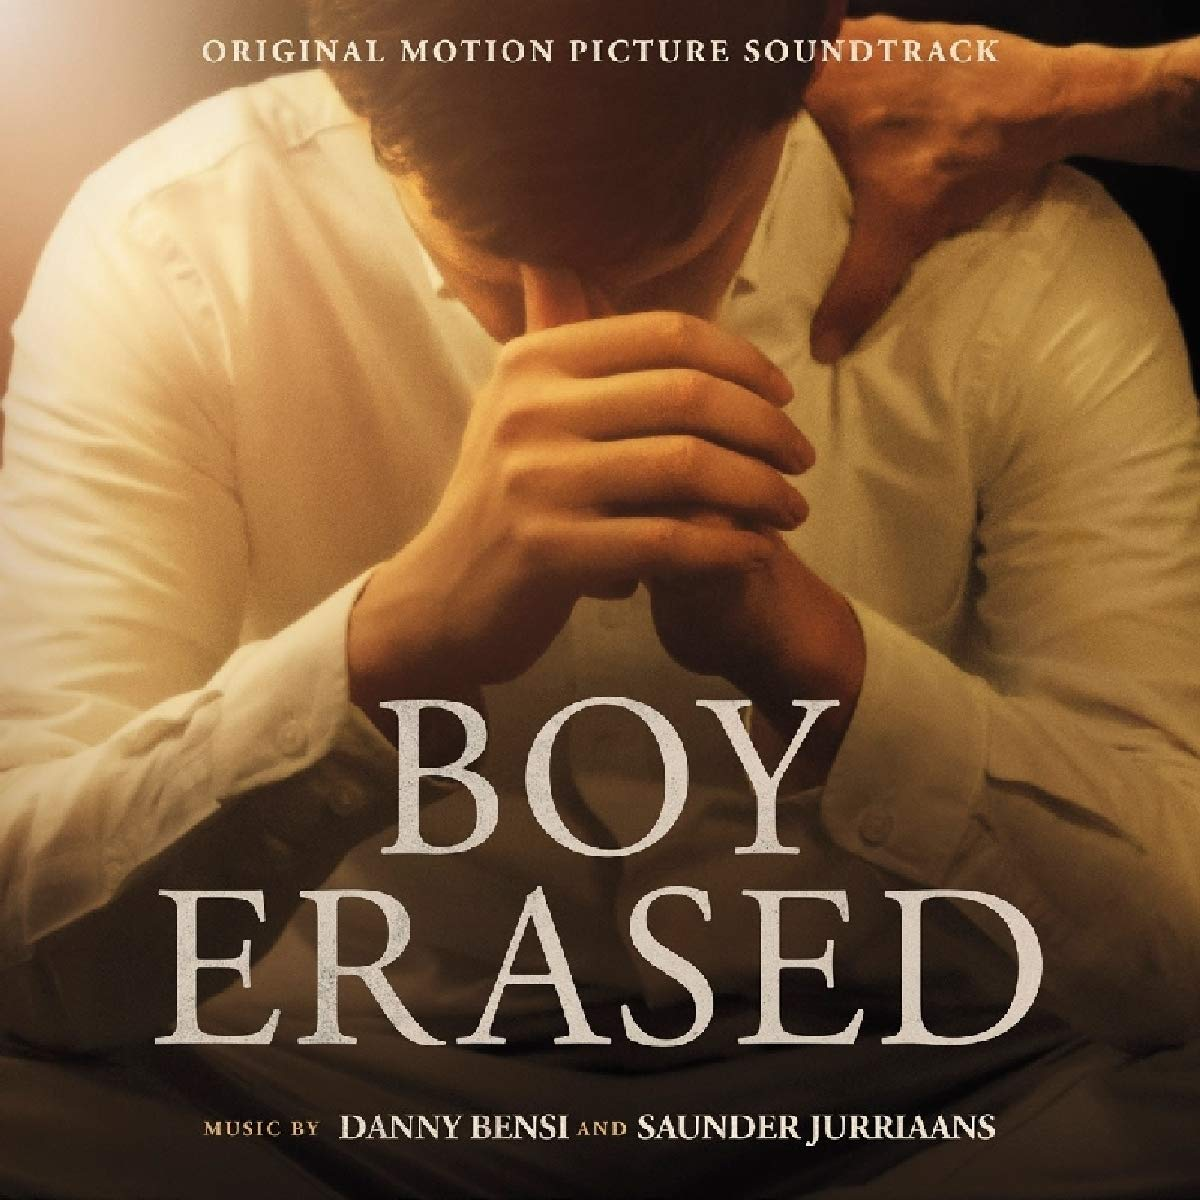 Boy erased - Vite cancellate (2018) (vinile)